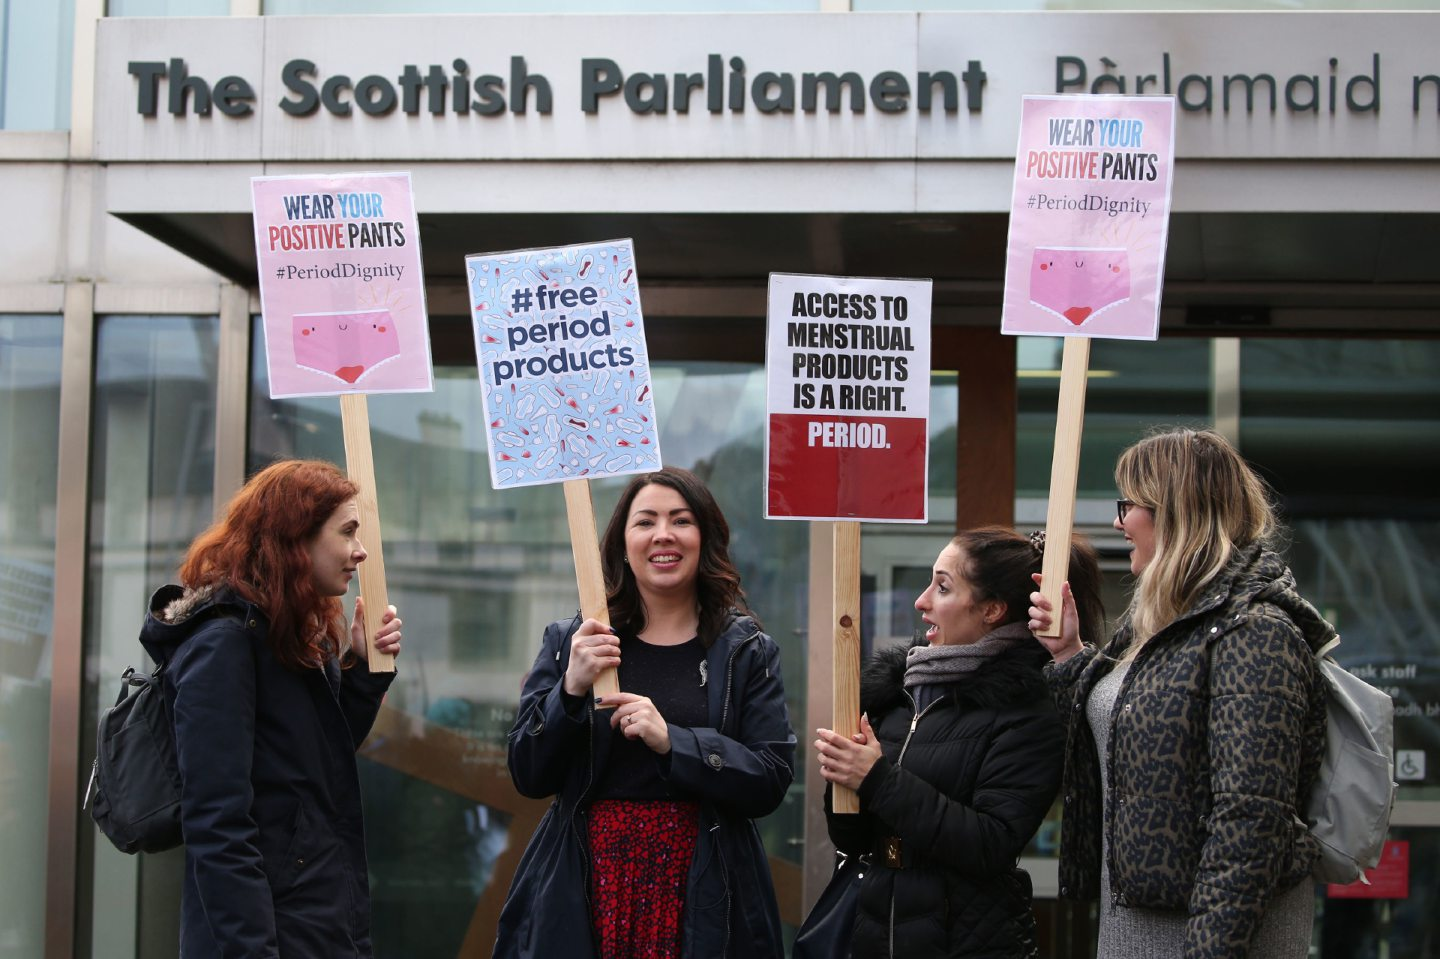 Monica Lennon MSP (second left) joins supporters of the Period Products bill at a rally outside Parliament in Edinburgh.